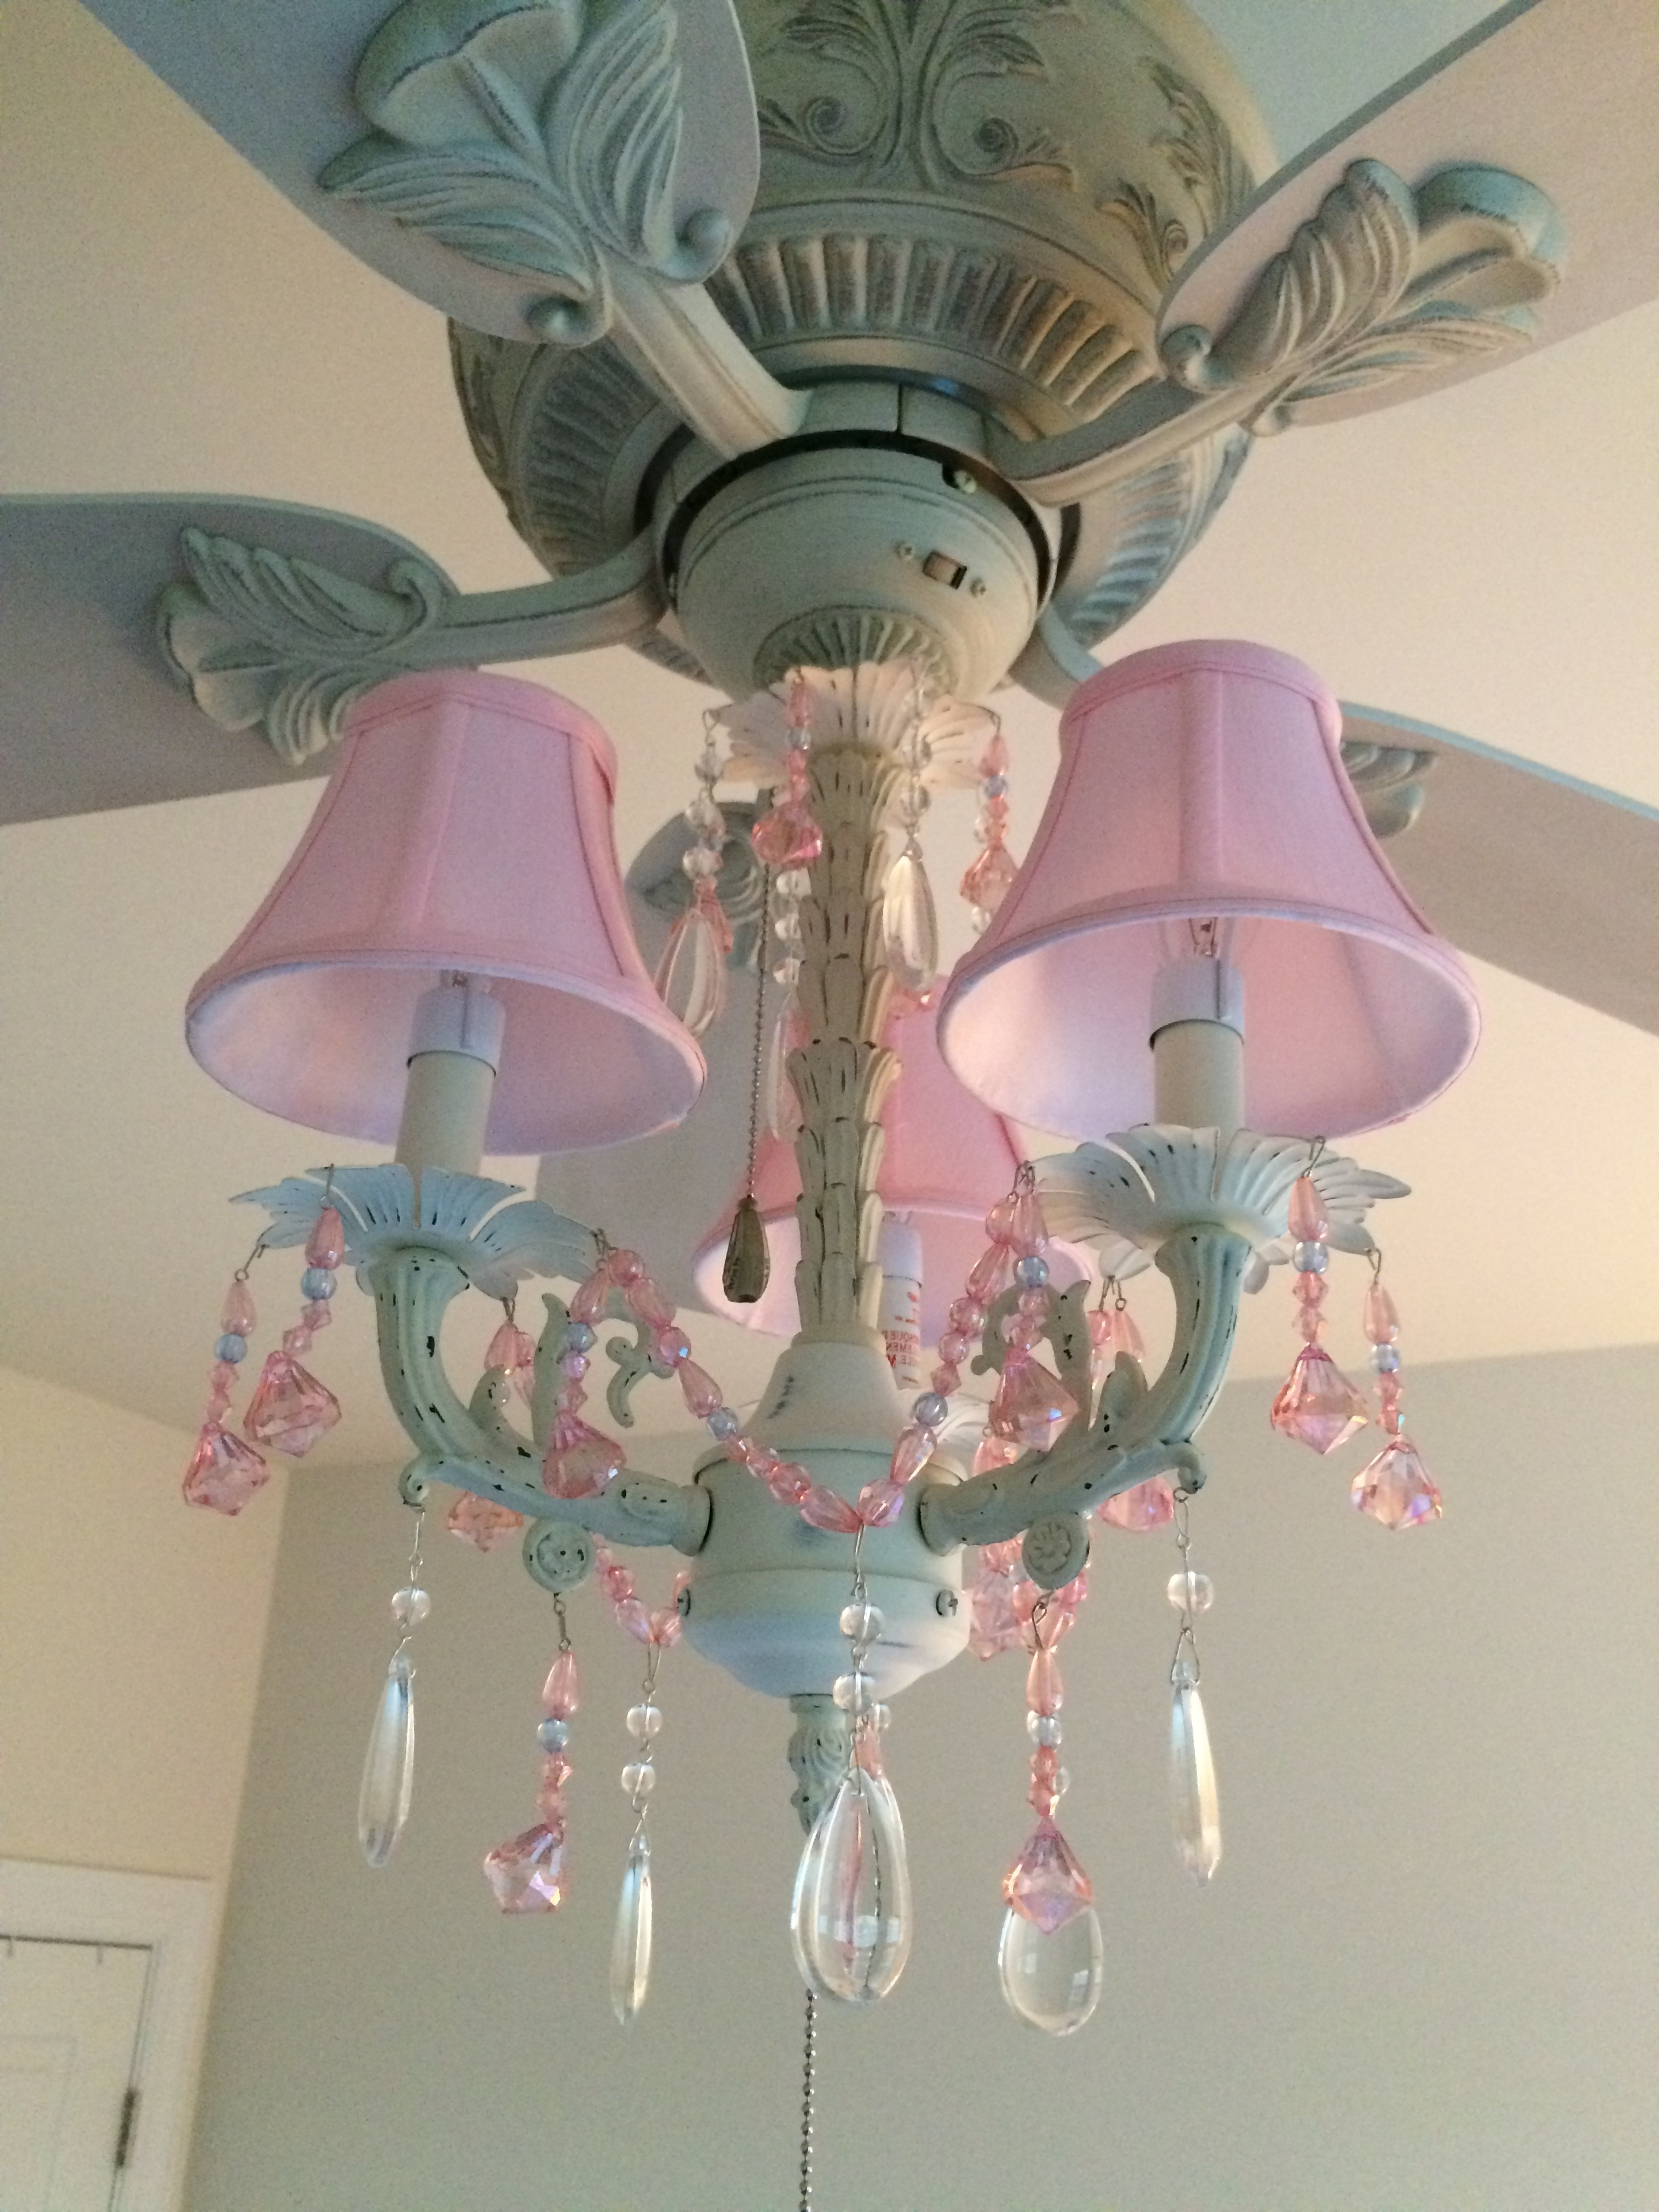 Latest Pink Chandelier Ceiling Fan And Light Kit (fandelier) – Perfect For Inside Turquoise And Pink Chandeliers (View 14 of 20)